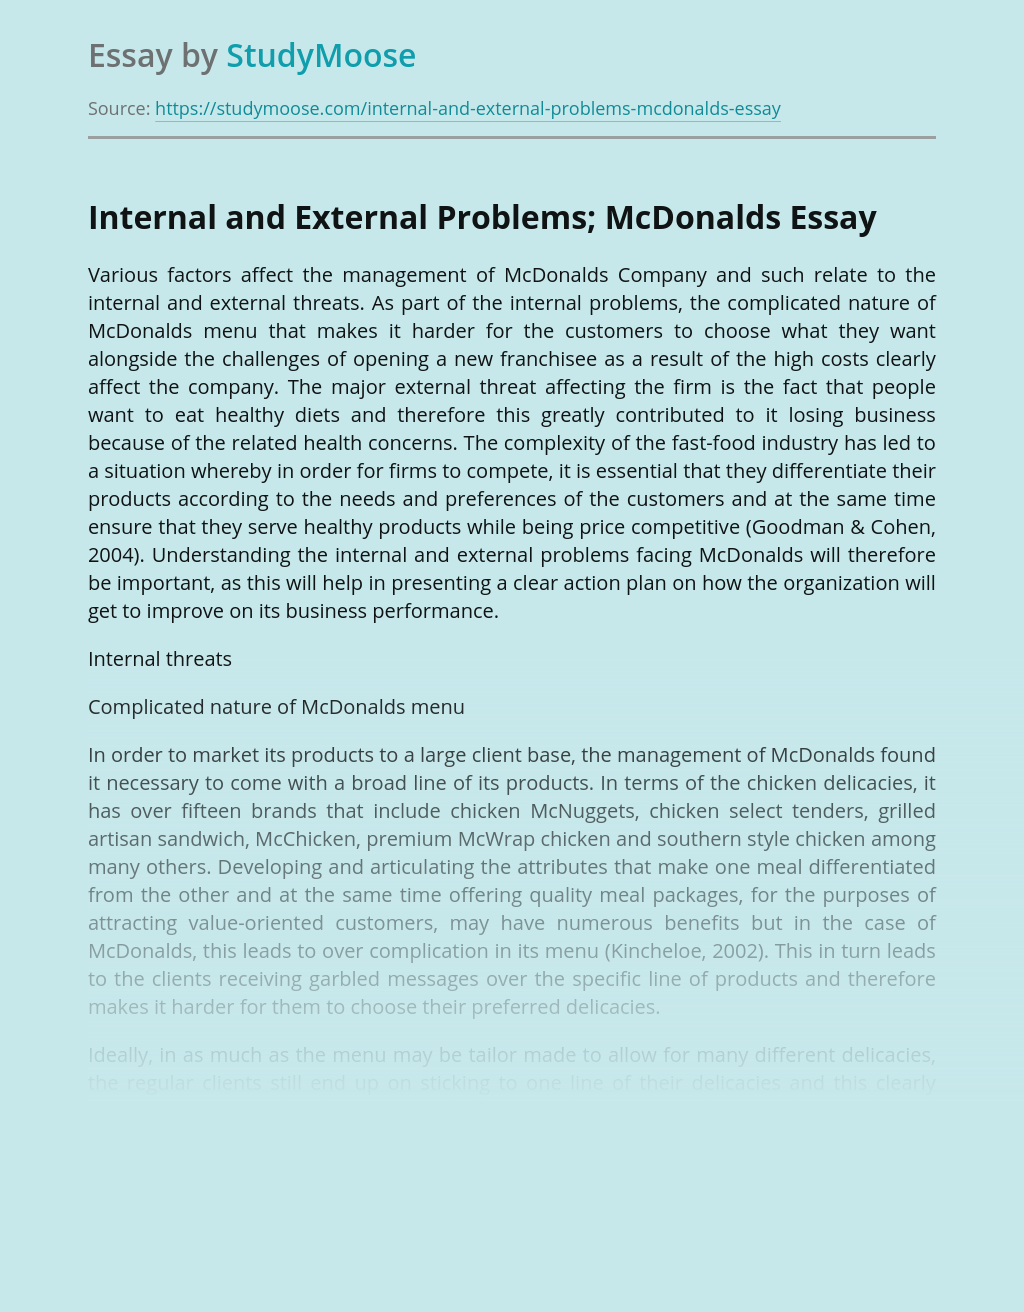 Internal and External Problems; McDonalds